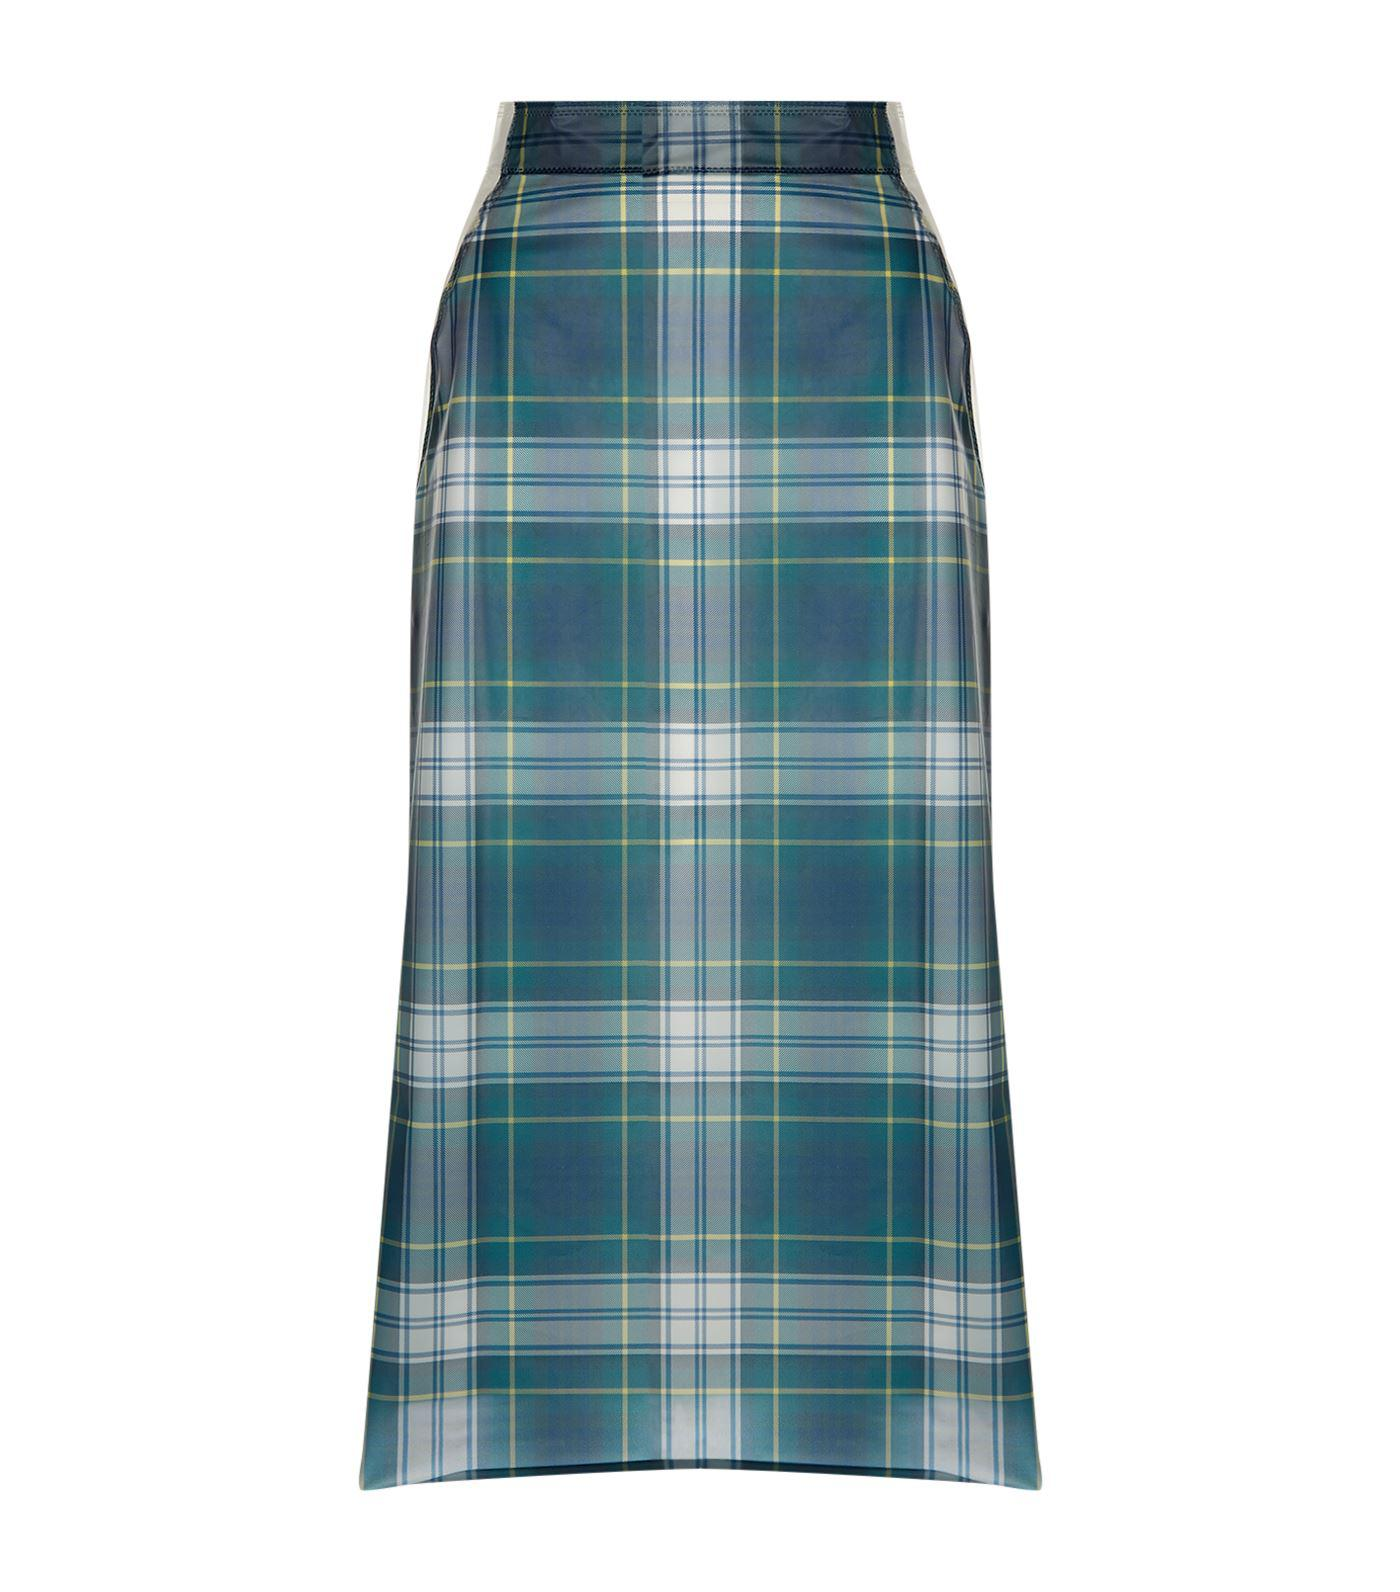 c1b3b012f Burberry Translucent A-line Skirt in Blue - Lyst